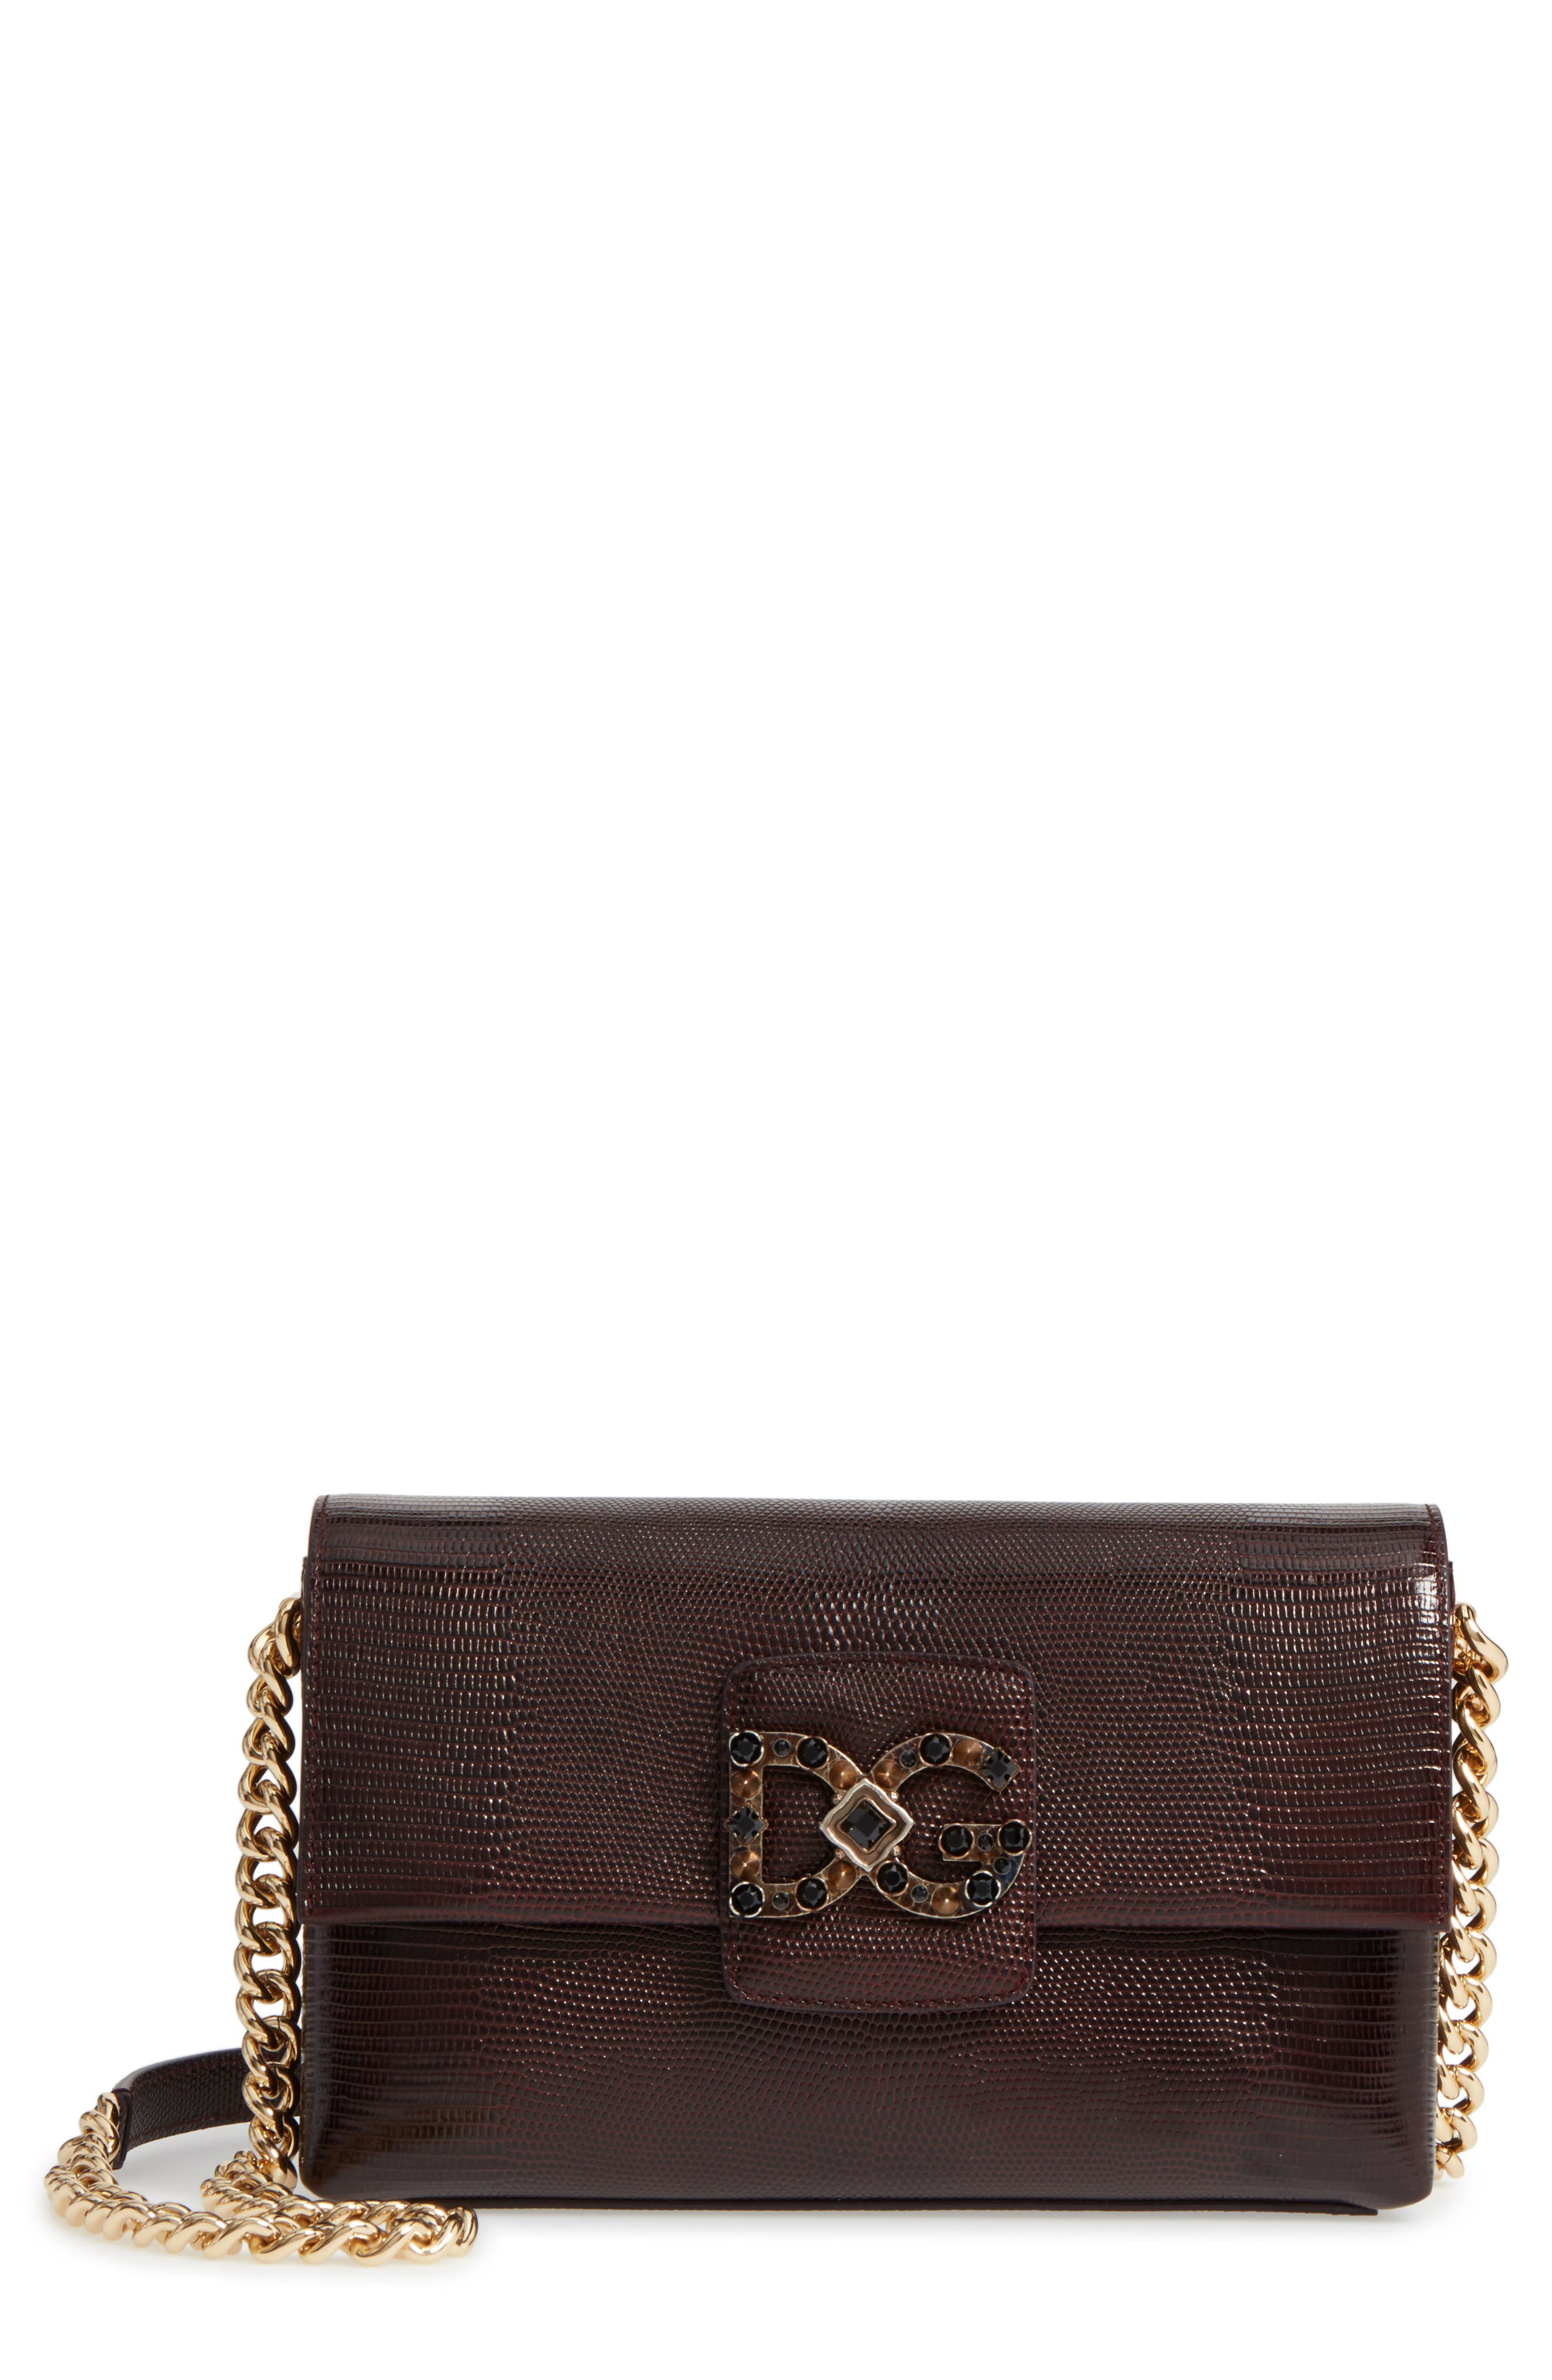 Dolce&Gabbana Medium Millennials Embossed Leather Shoulder Bag